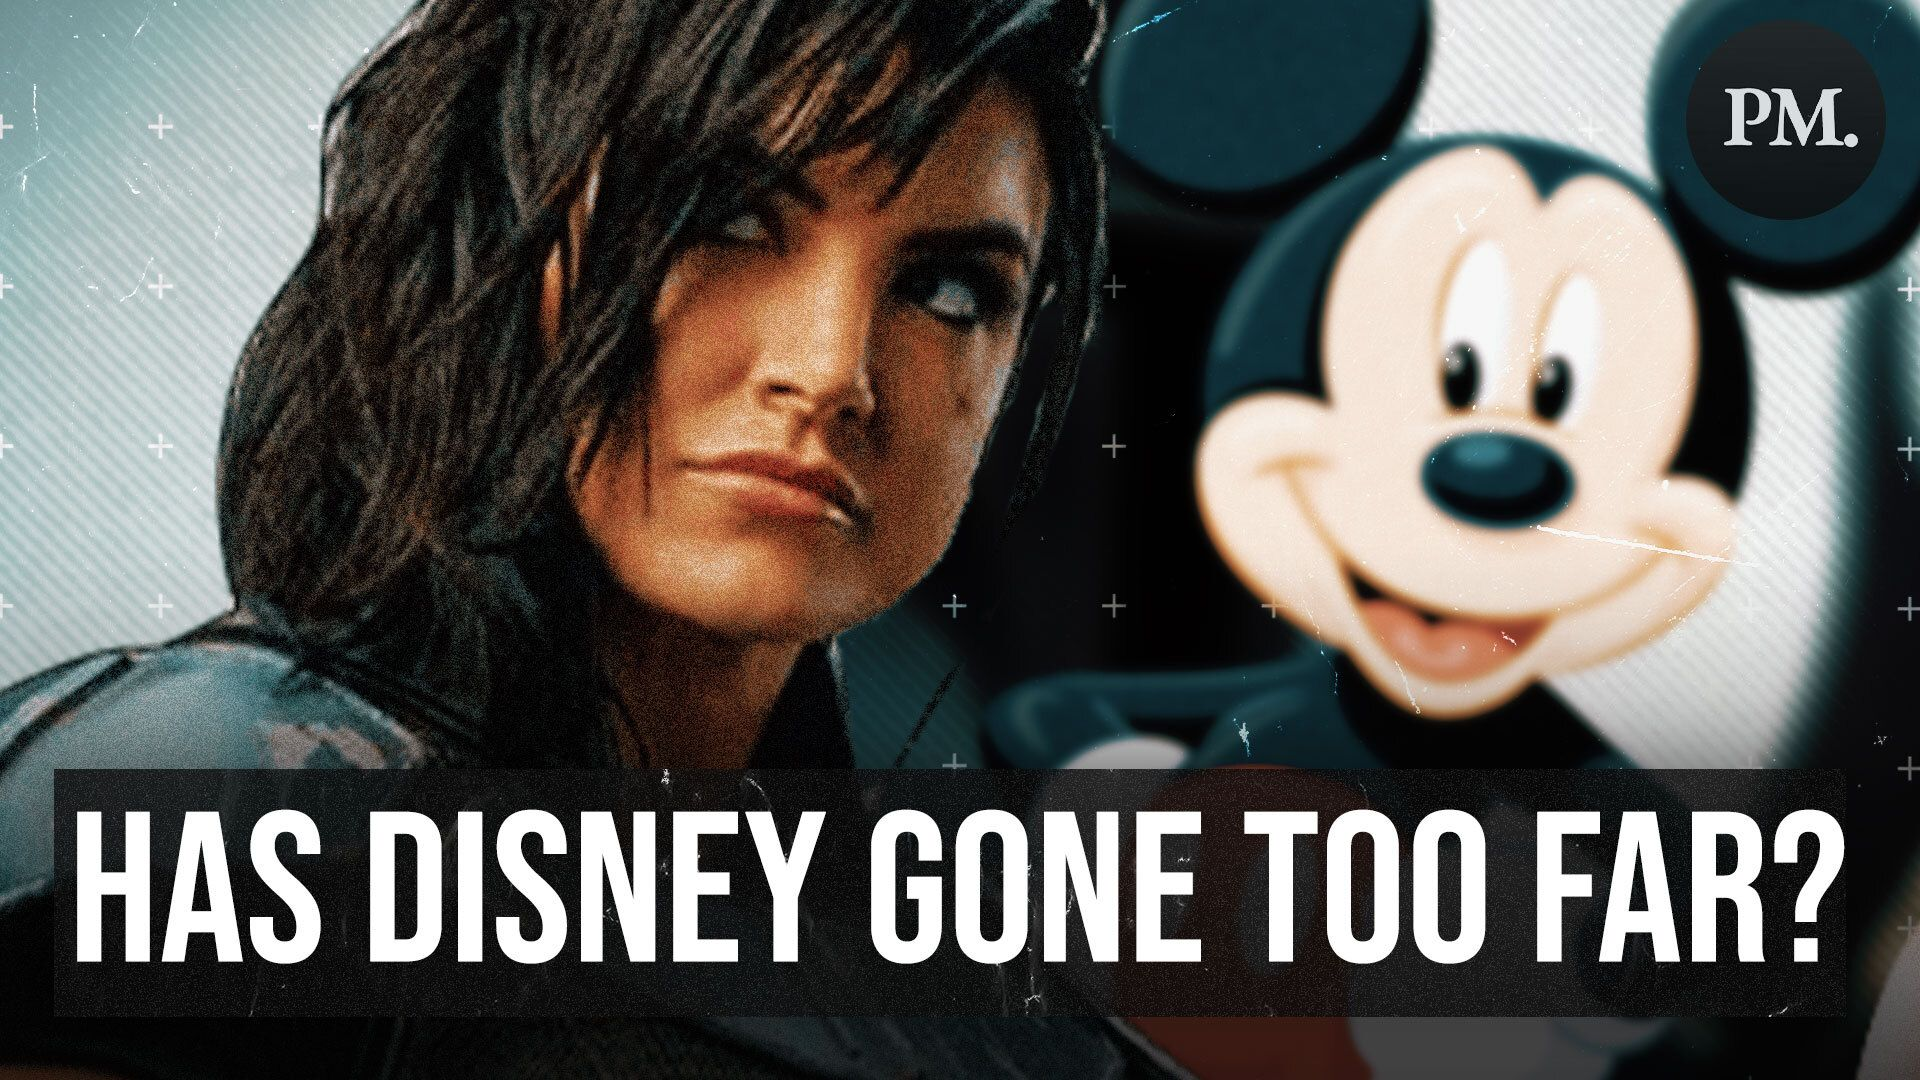 Has Disney gone too far by cancelling Gina Carano?—Cancel This